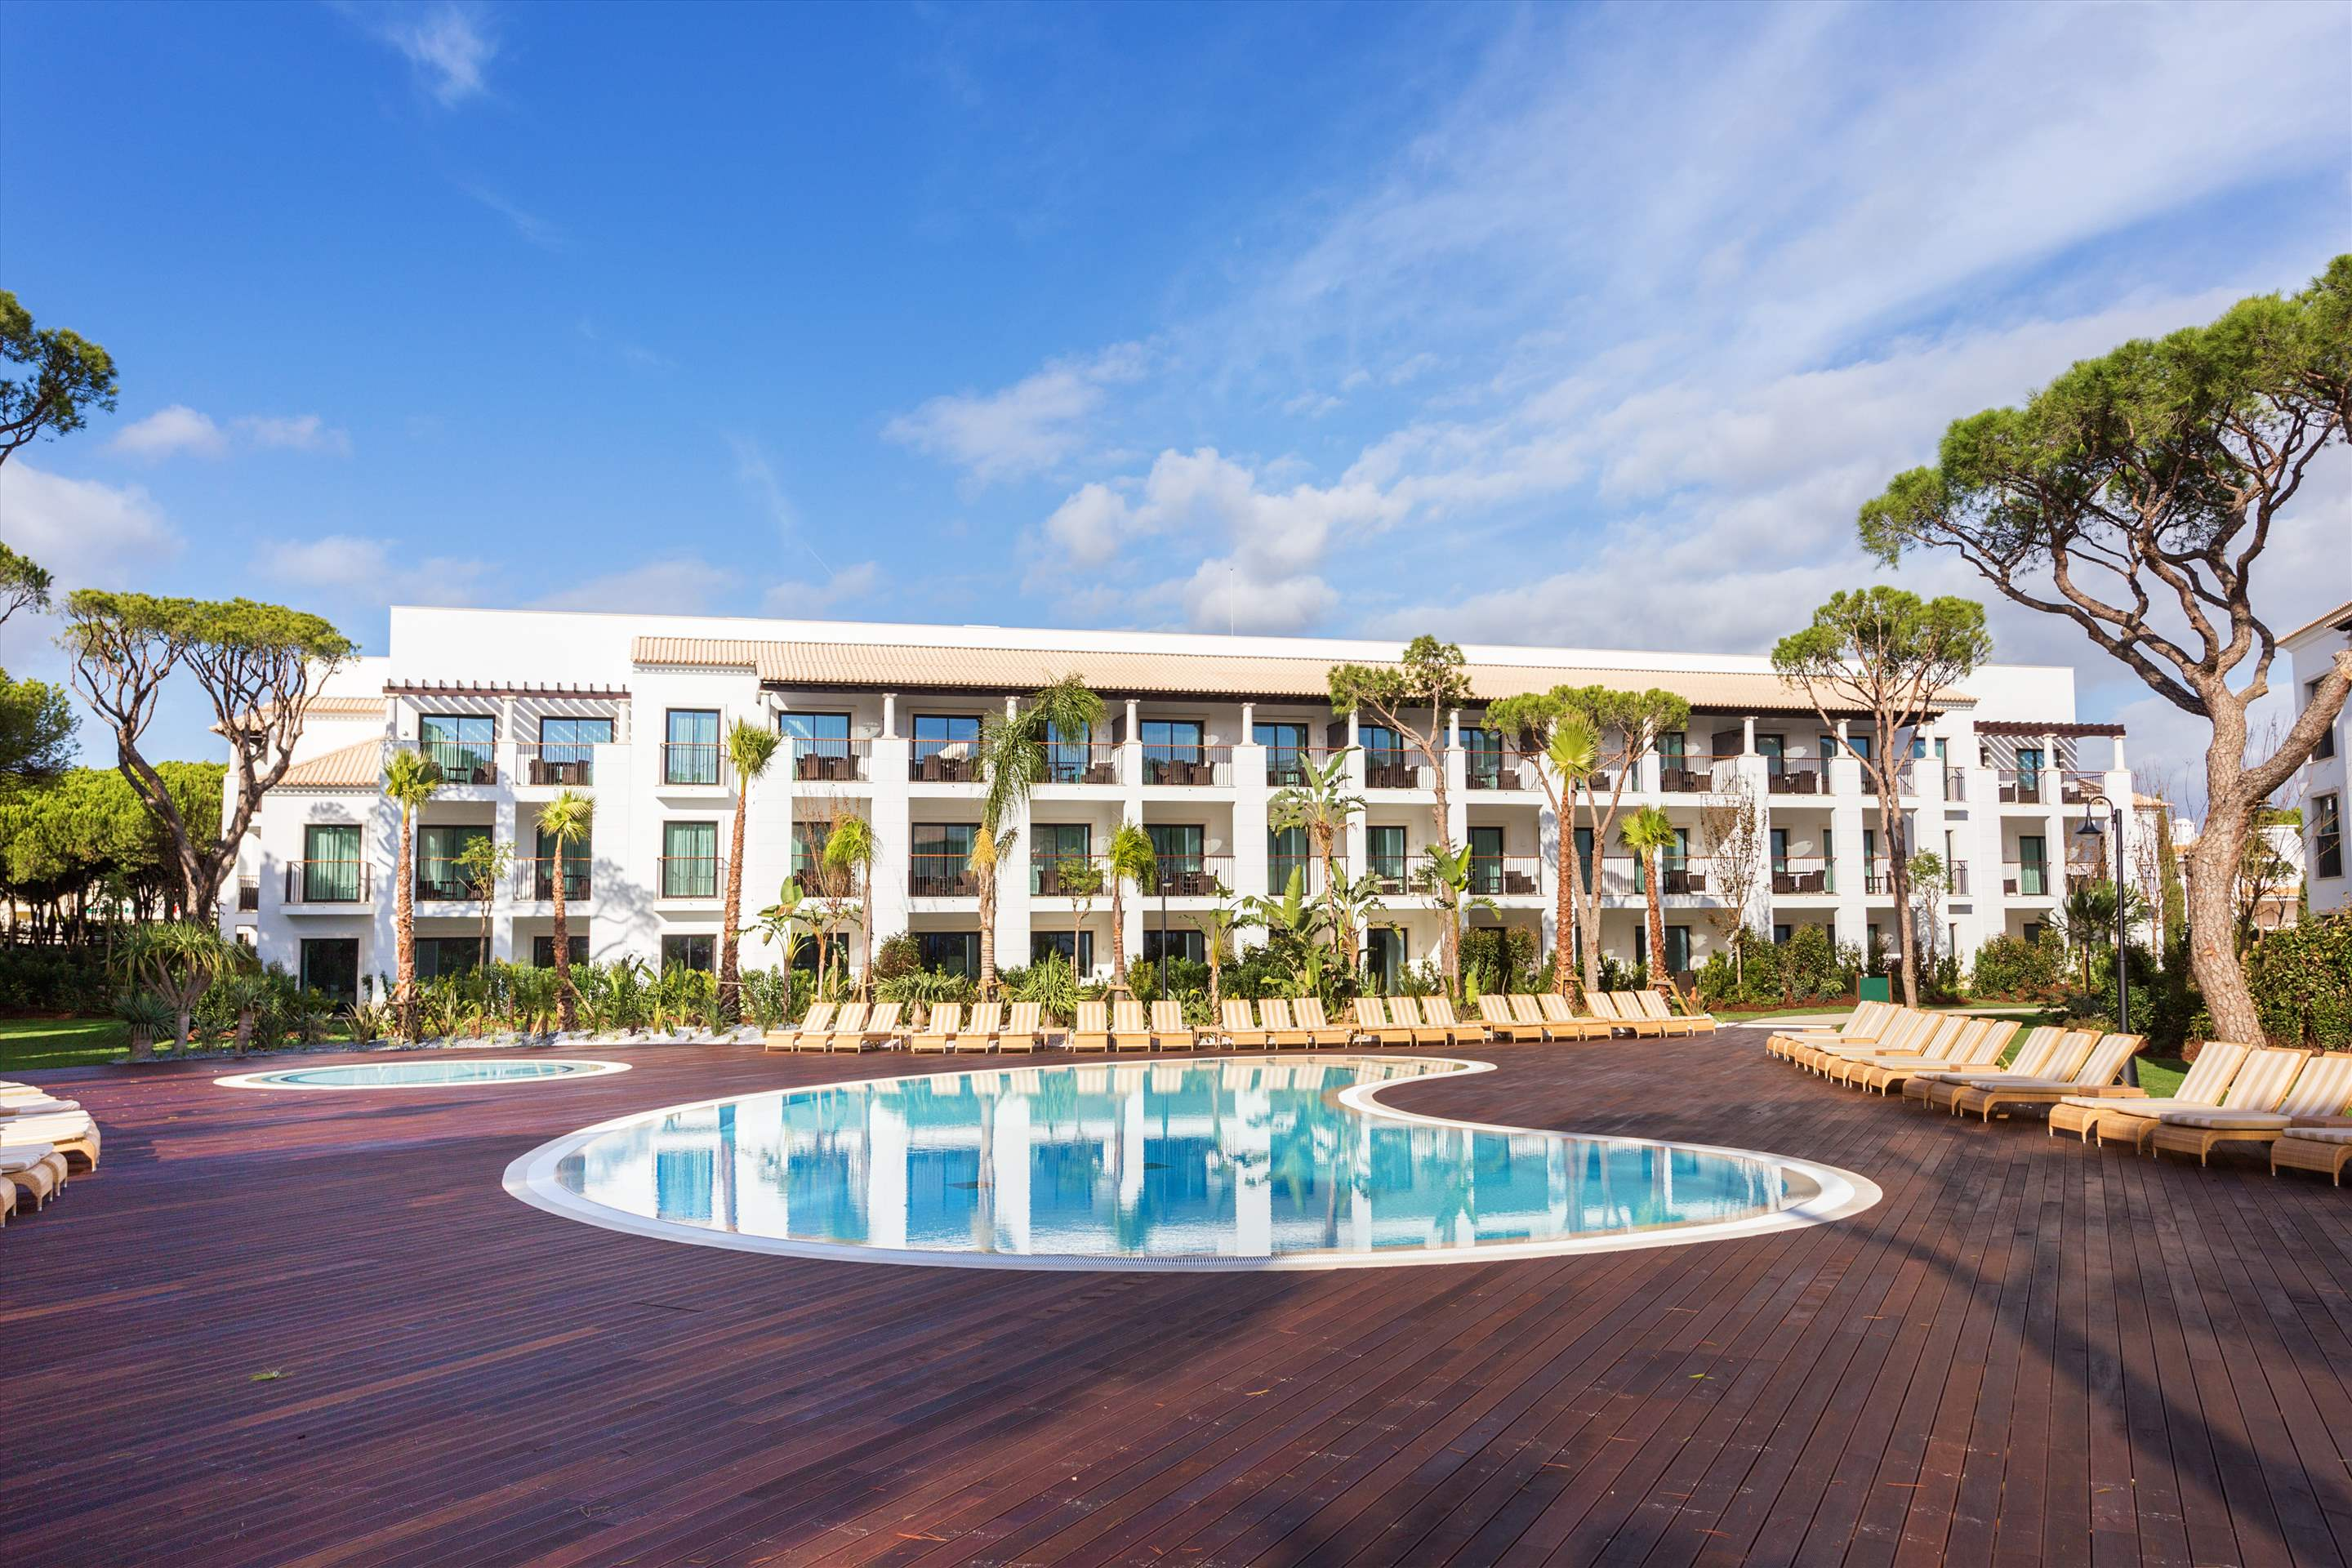 Pine Cliffs Gardens, One Bedroom Suite, S/C Basis, 1 bedroom apartment in Pine Cliffs Resort, Algarve